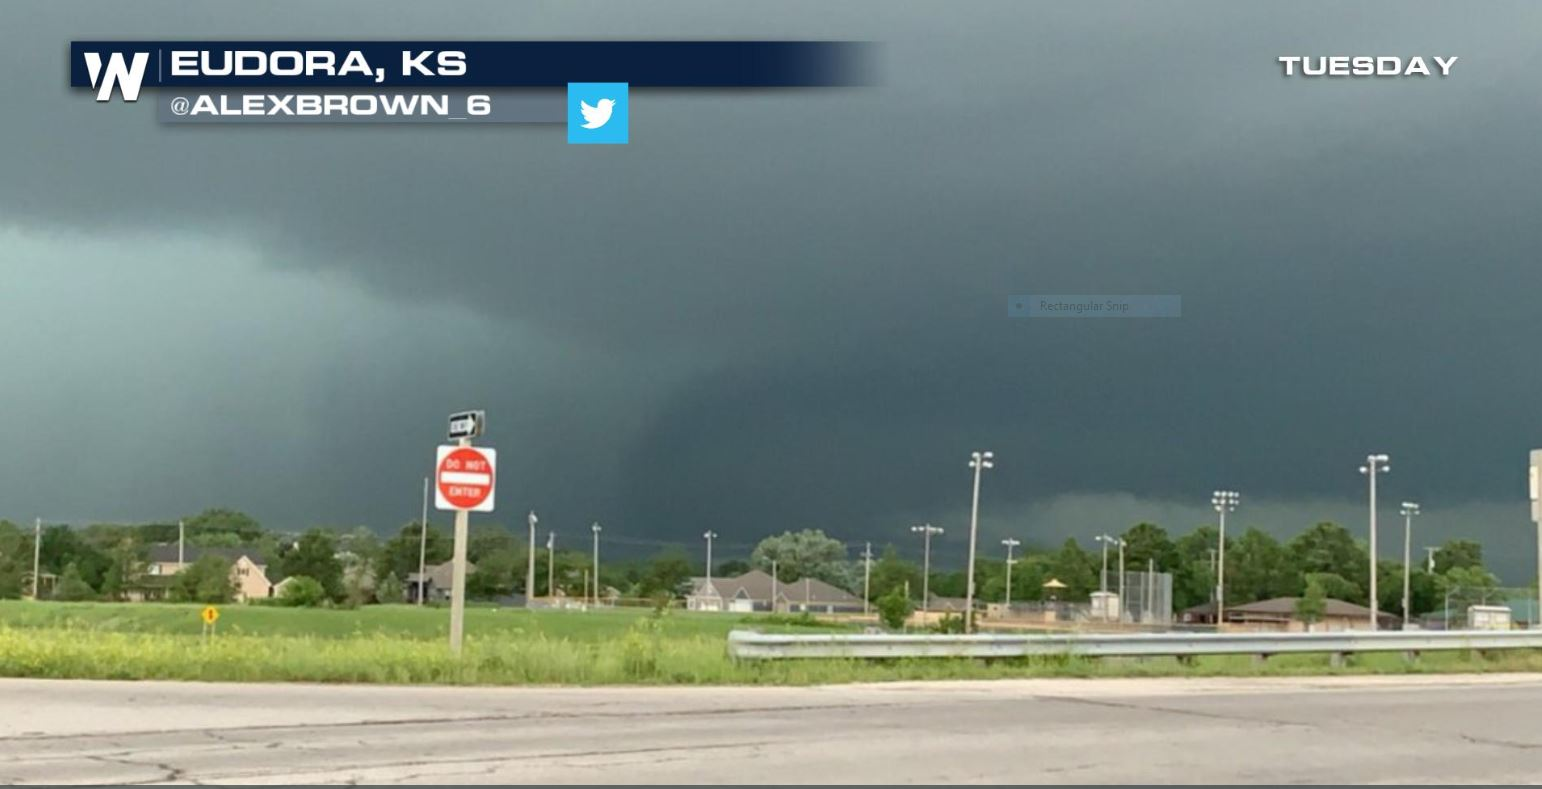 Confirmed Tornado Comes Very Close to Kansas City